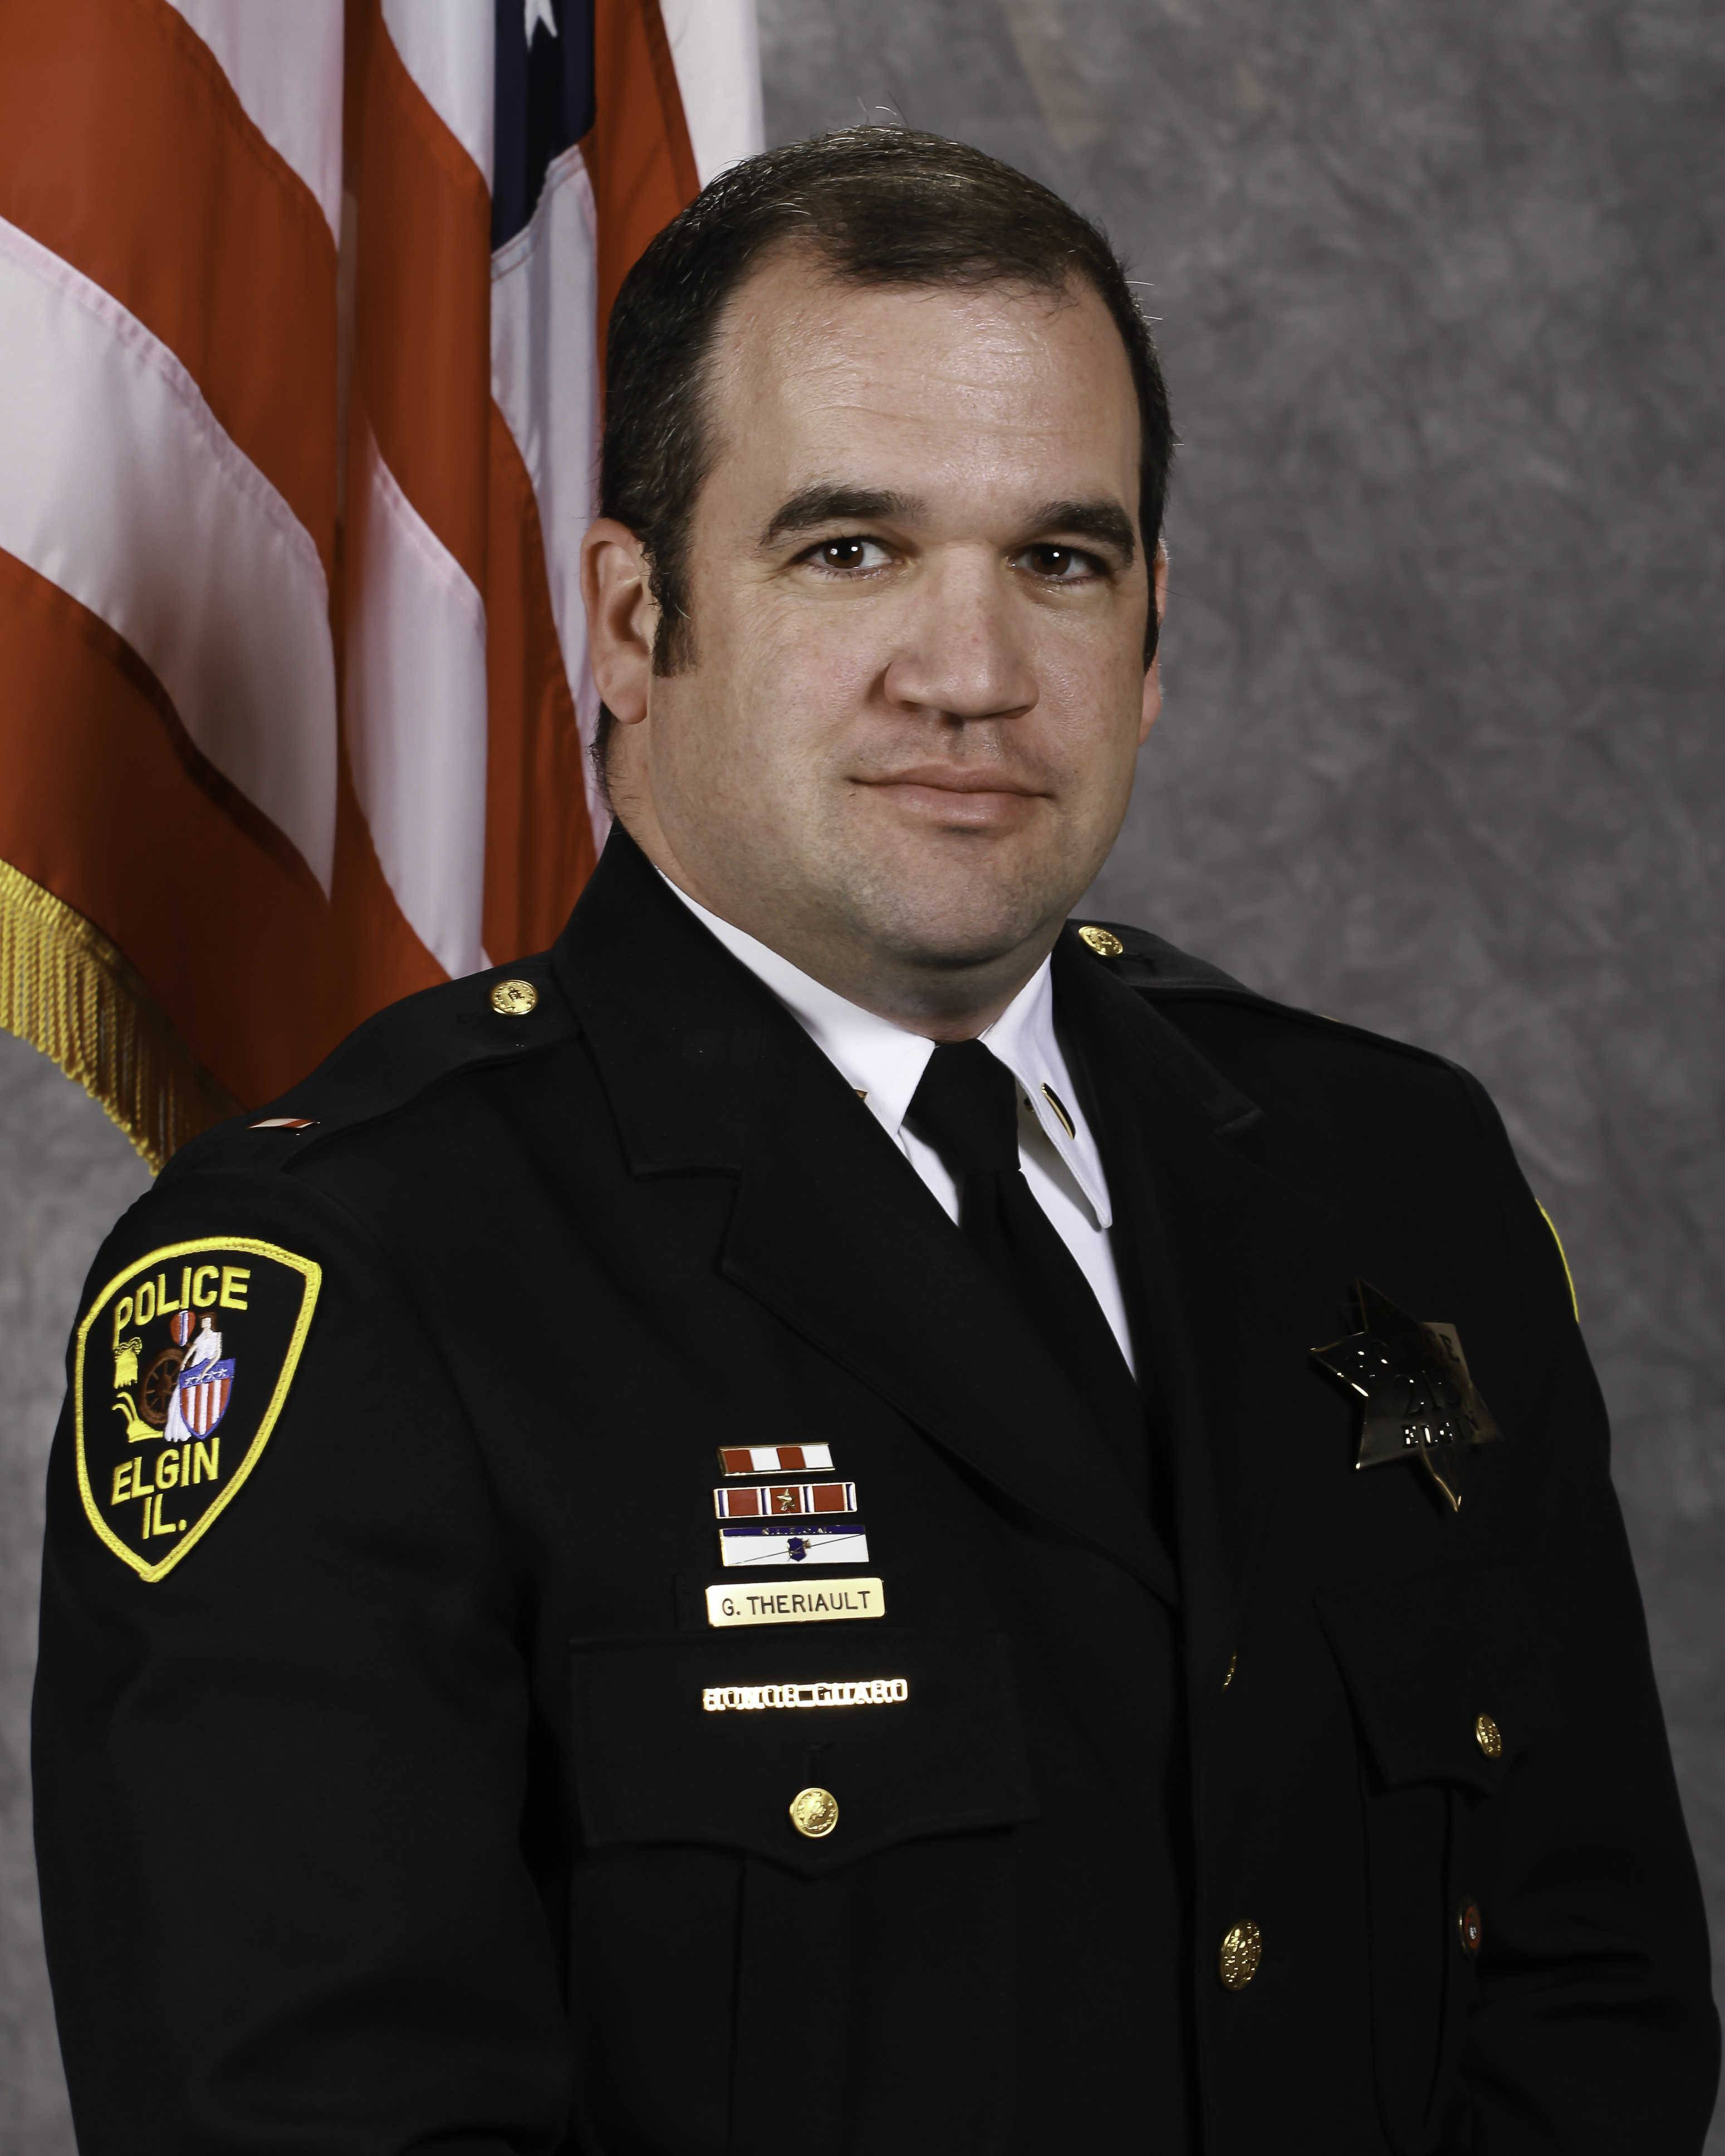 Elgin commander to be police chief in Sycamore